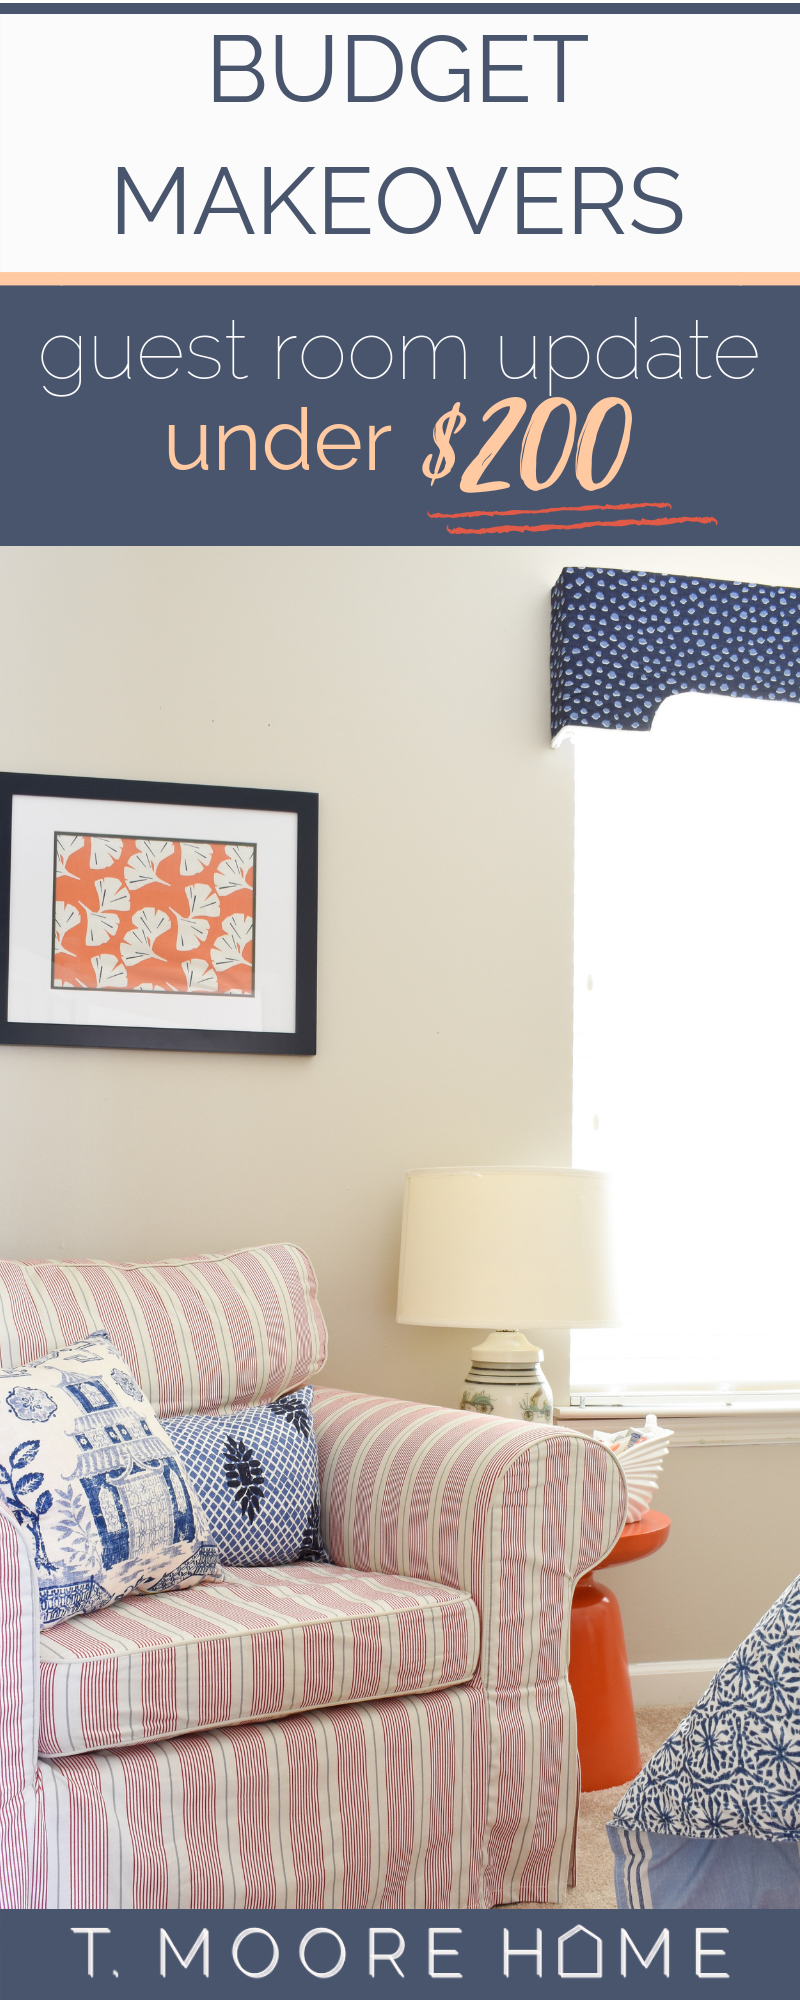 colorful pattern-filled bedroom updates on a serious budget